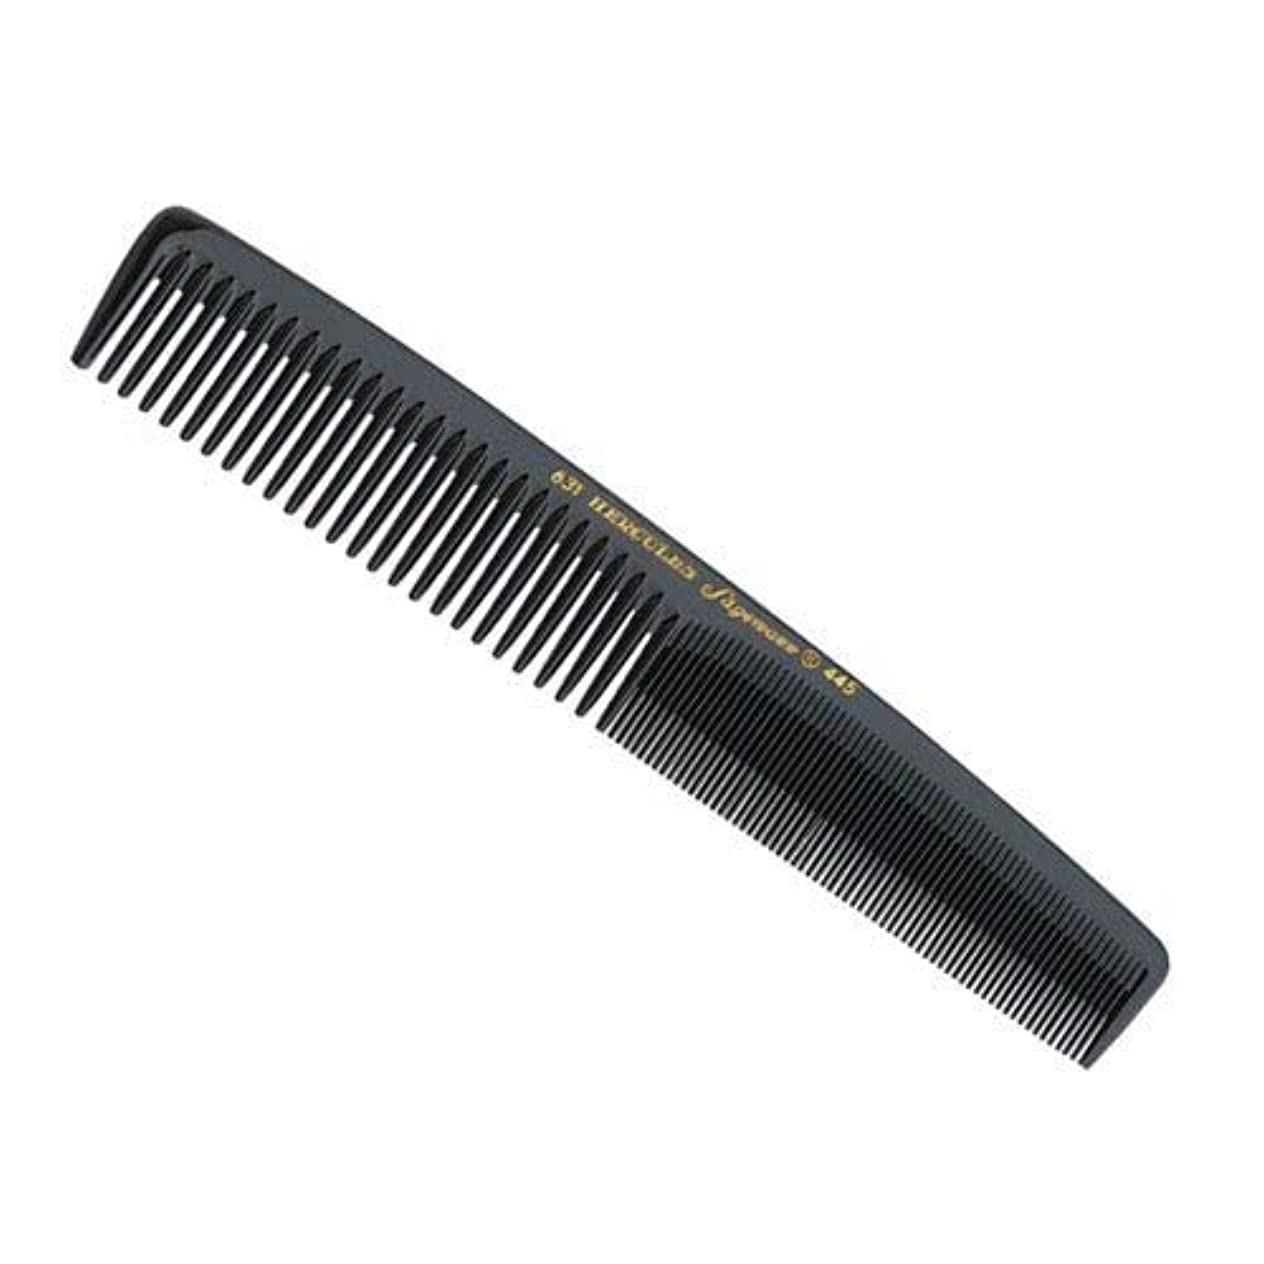 先住民コイル綺麗なHercules Sagemann Medium Waver Ladies Hair Comb, Length-17.8 cm [並行輸入品]